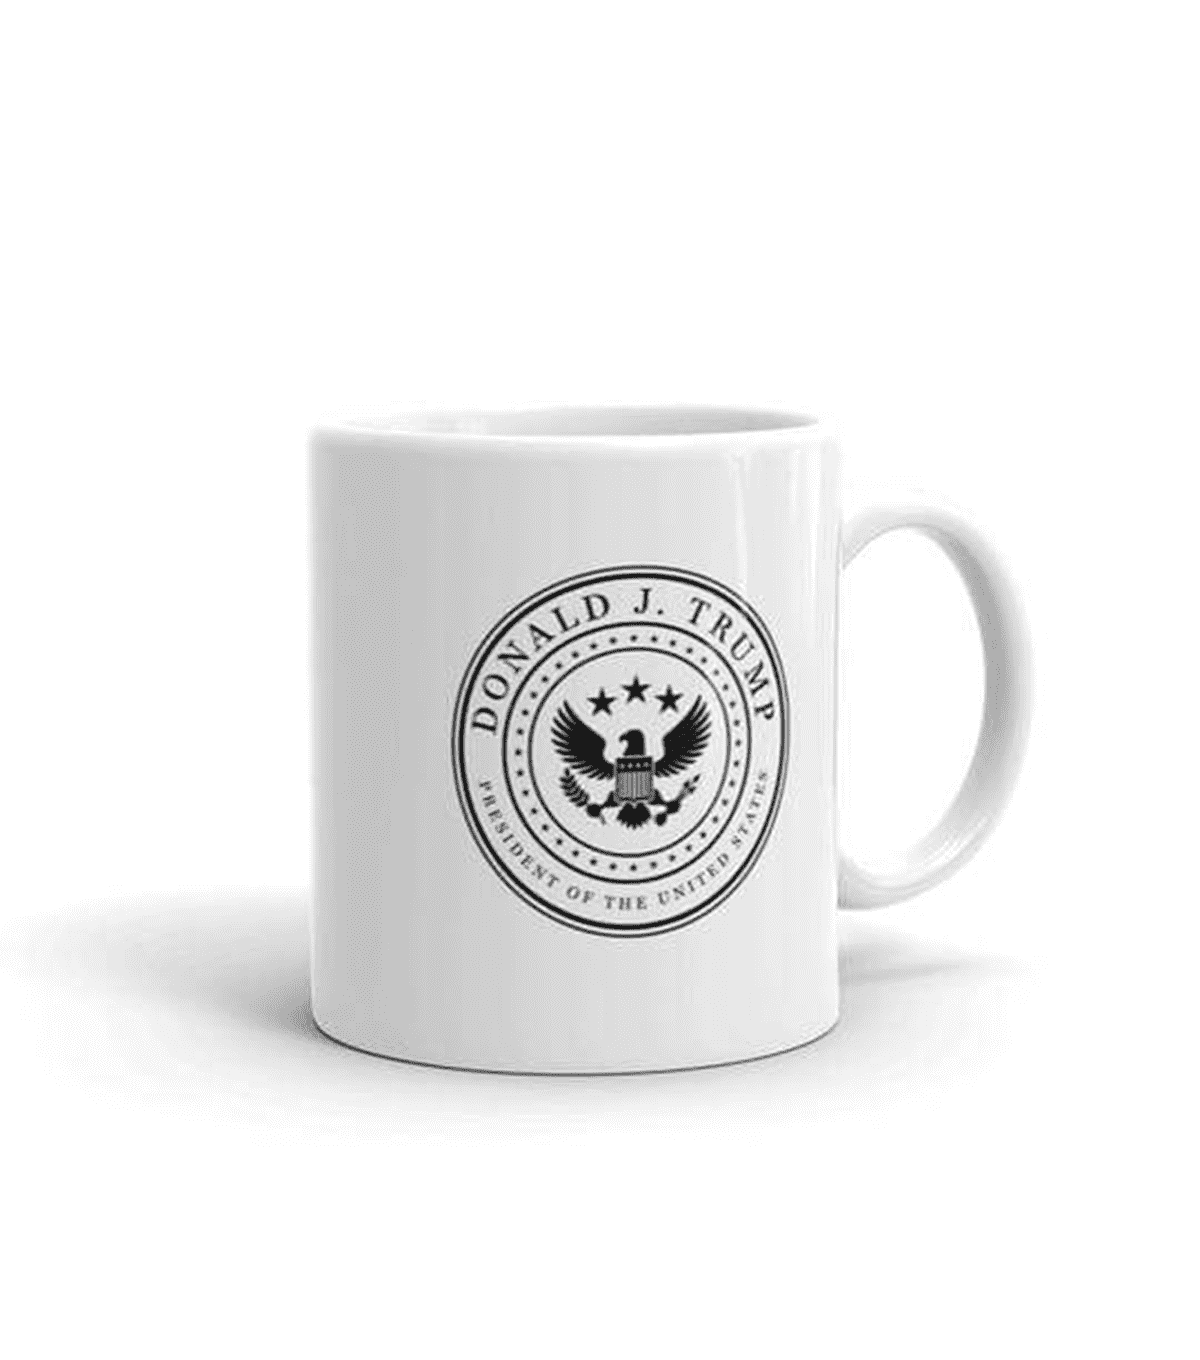 White & Black Presidential Coffee Mug